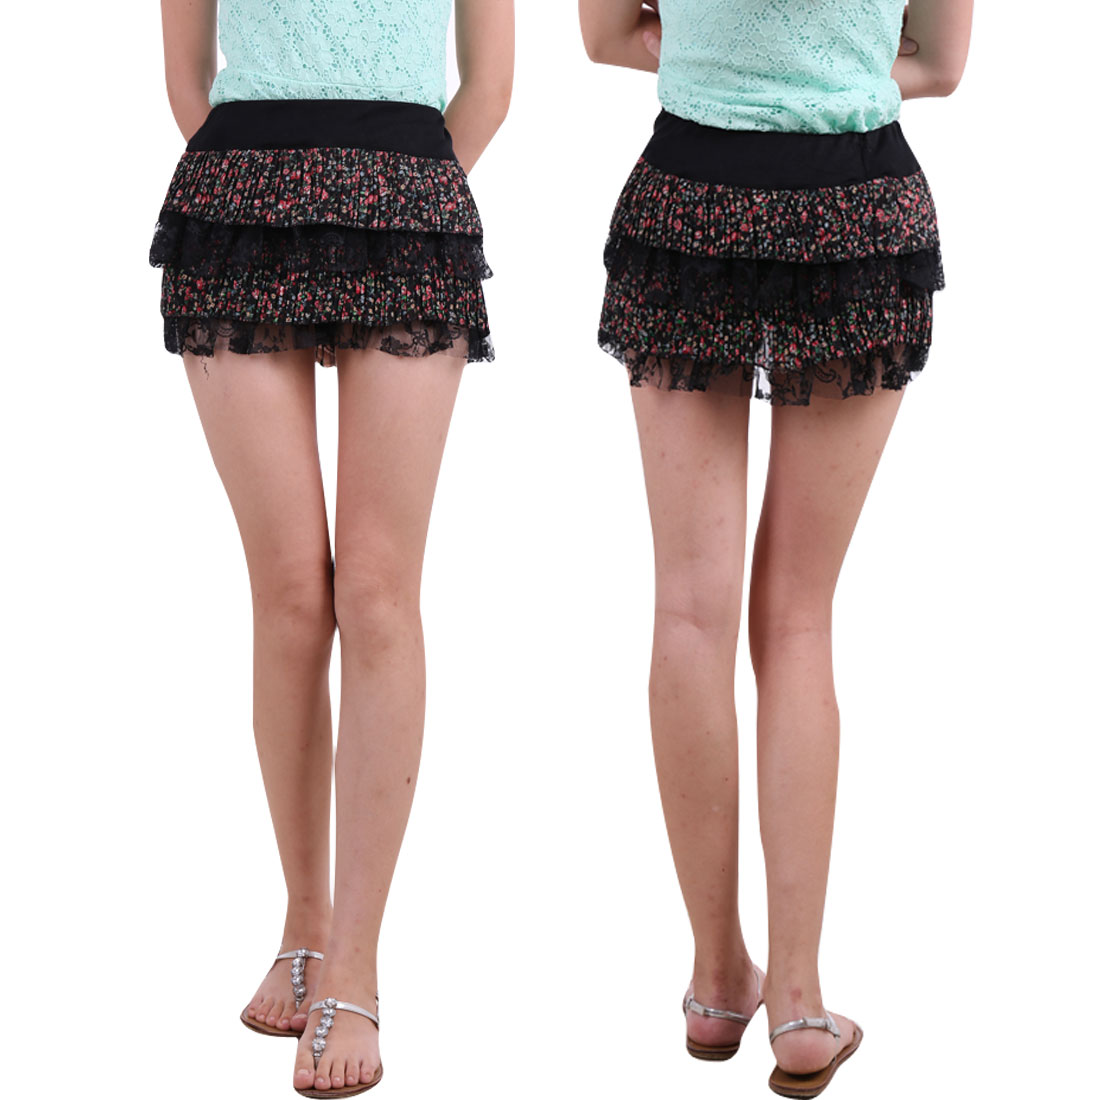 Ladies Black Elastic Band Waist Flower Lace Layered Mini Skirt XS